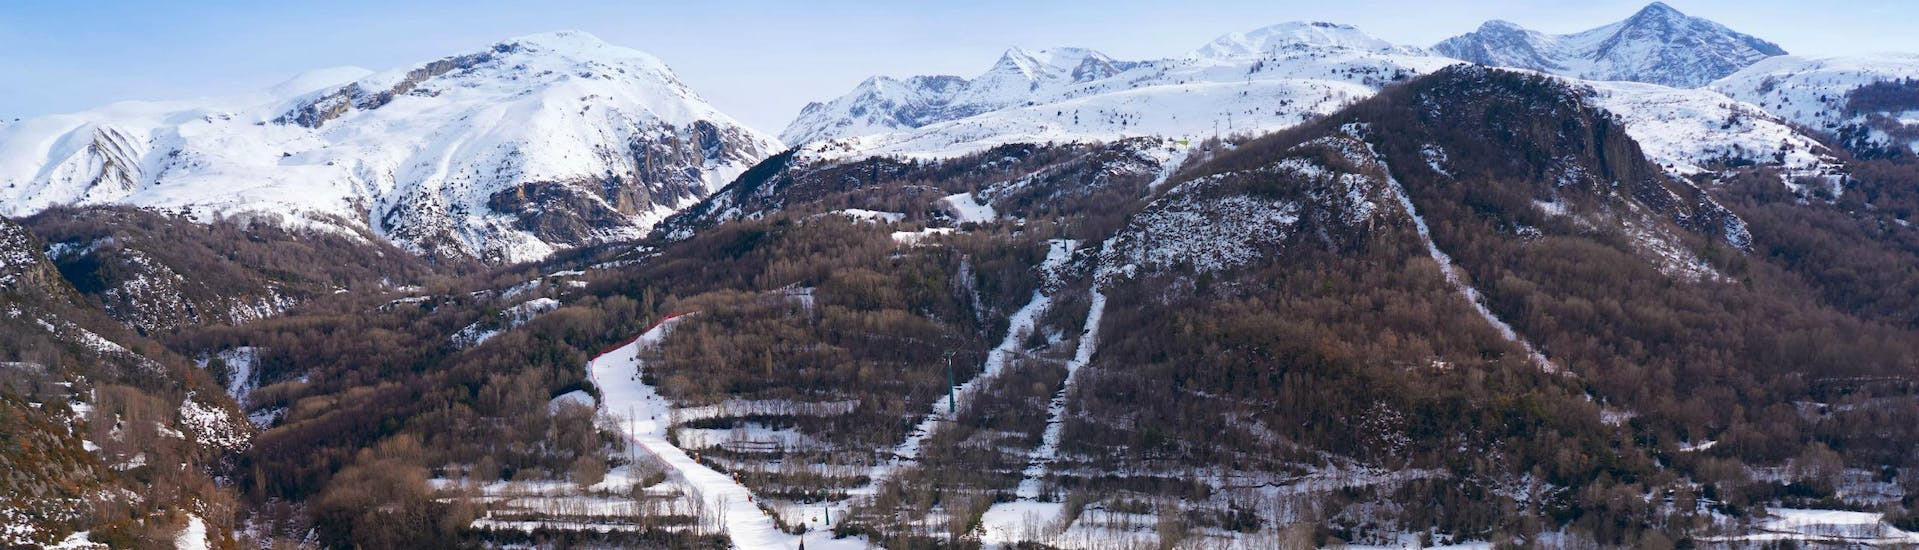 An image of the Spanish town of Panticosa, where local ski schools offer ski lessons for beginners who want to learn to ski.